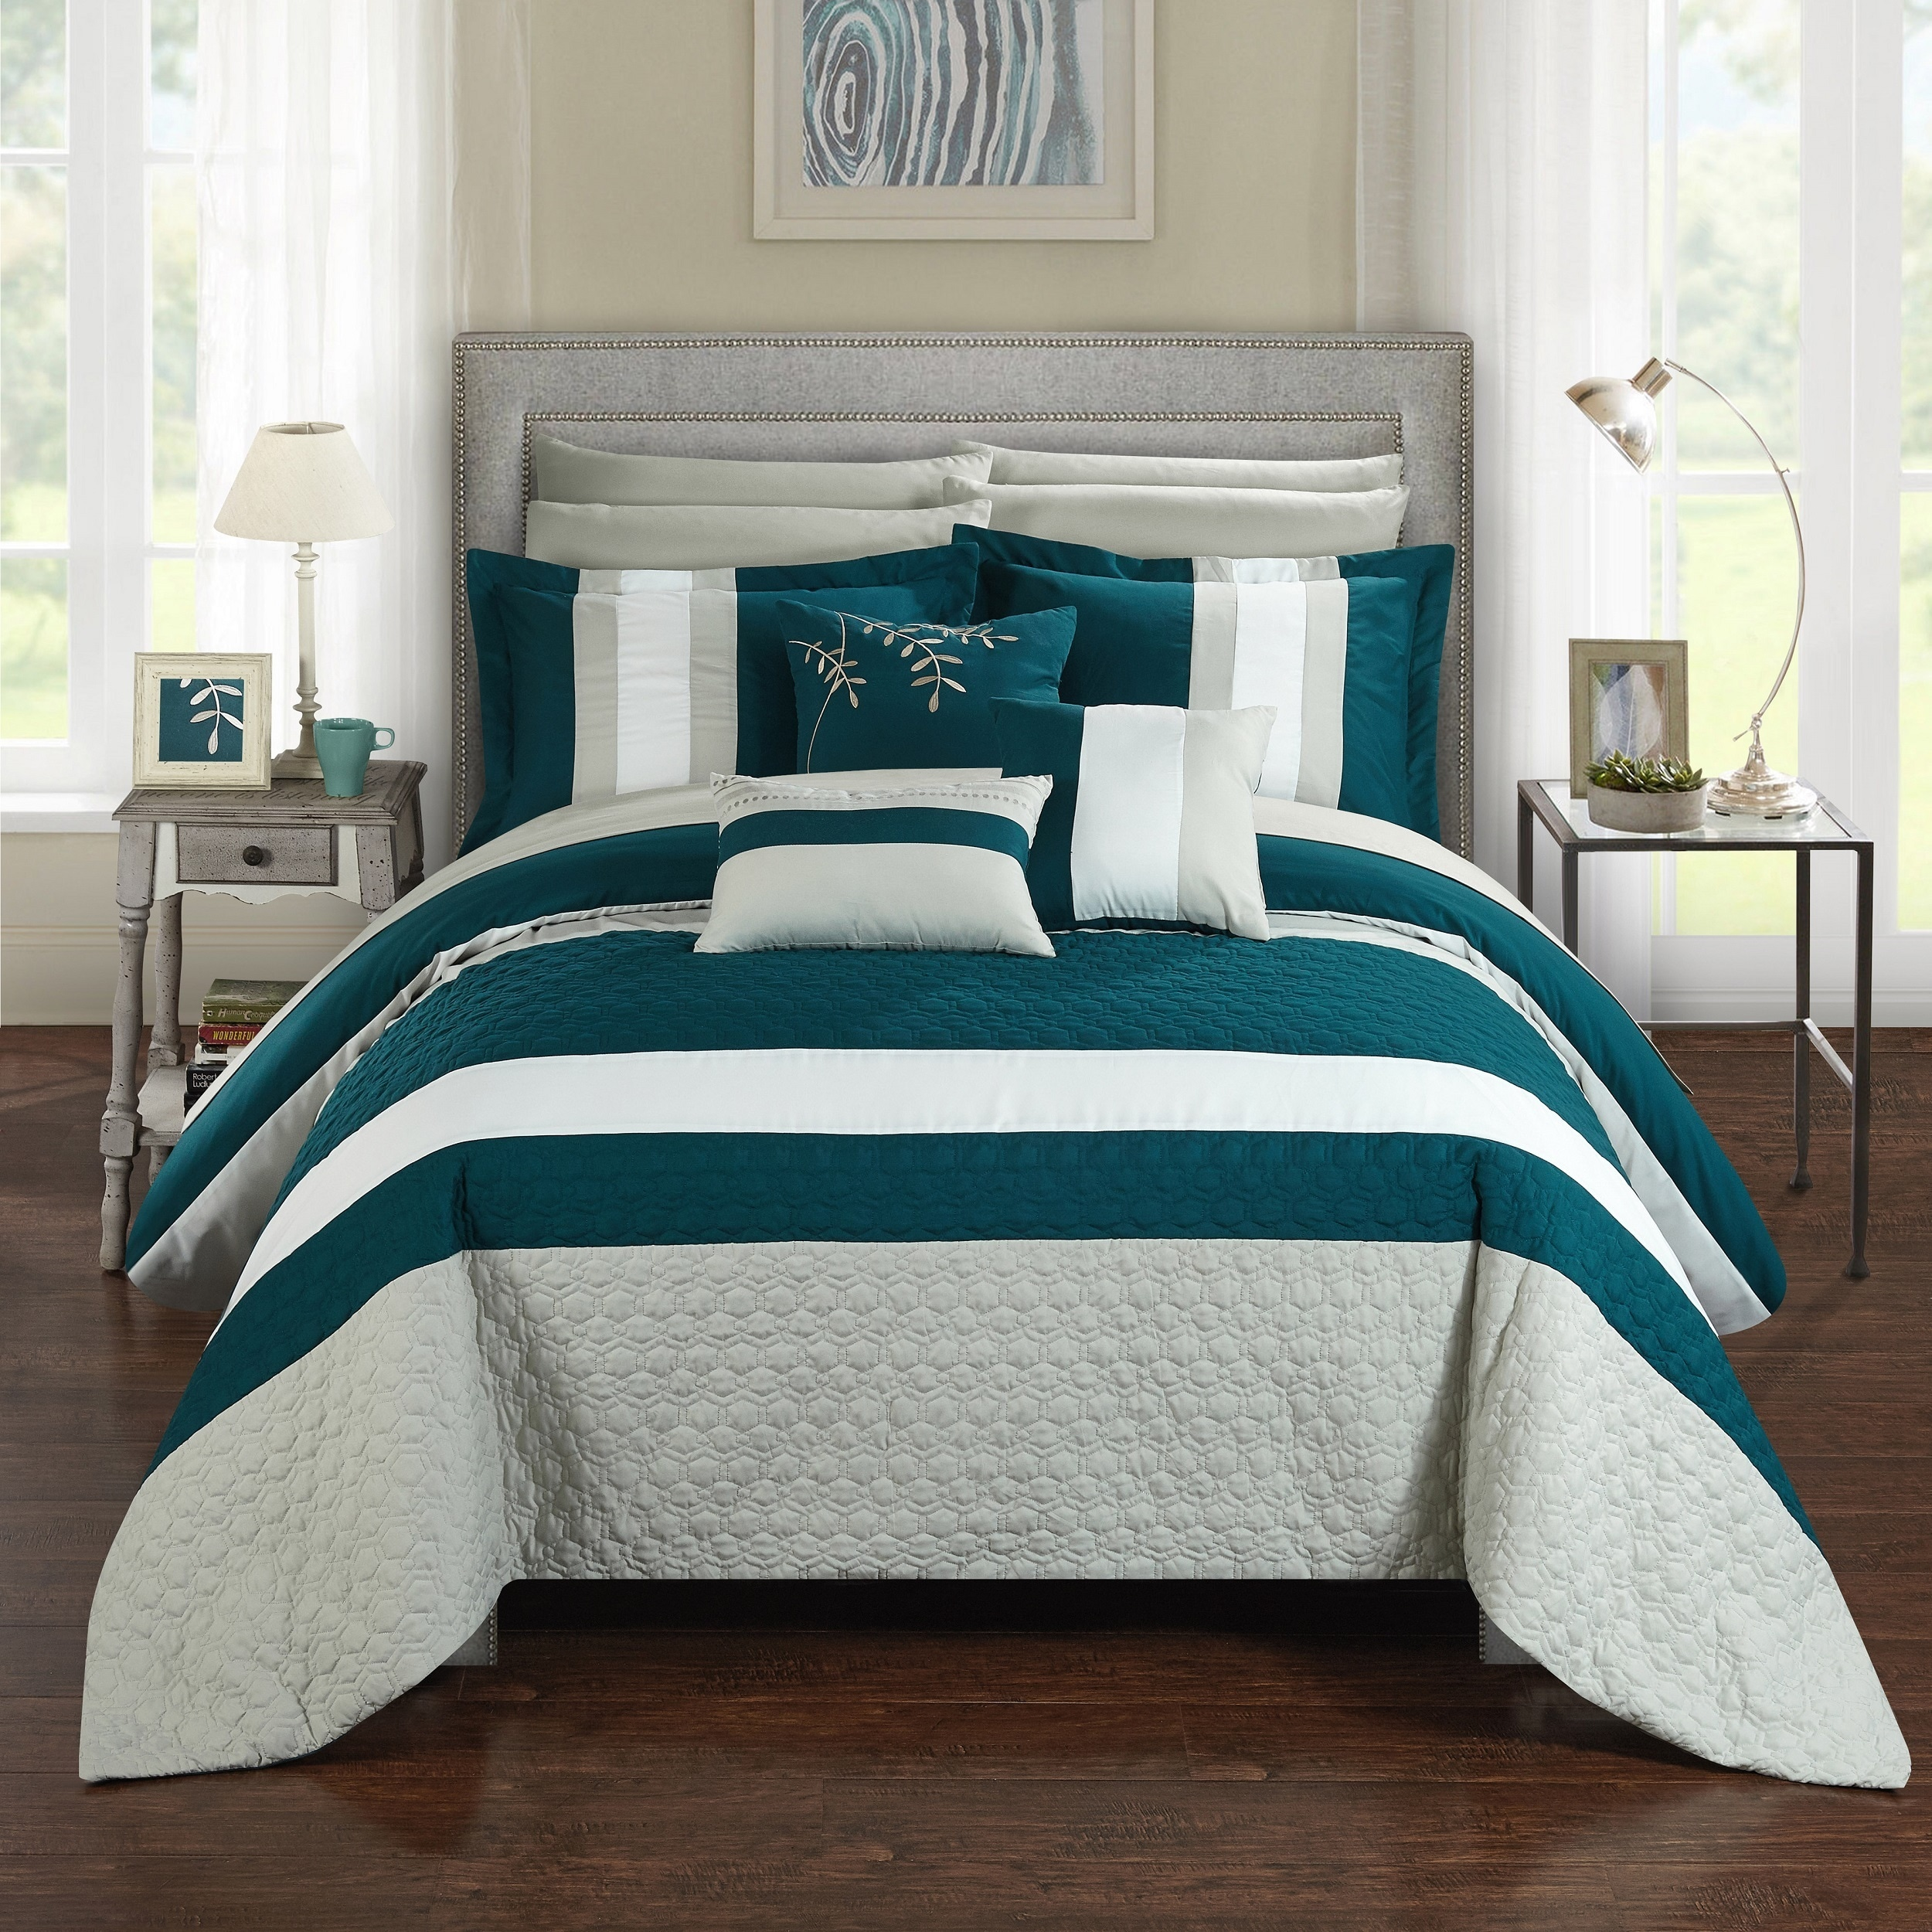 discontinued teal crest sunrise bedding listings com cmft and q medallion ch home pc available bed no greydock comforter bcs size gray blue queen set longer